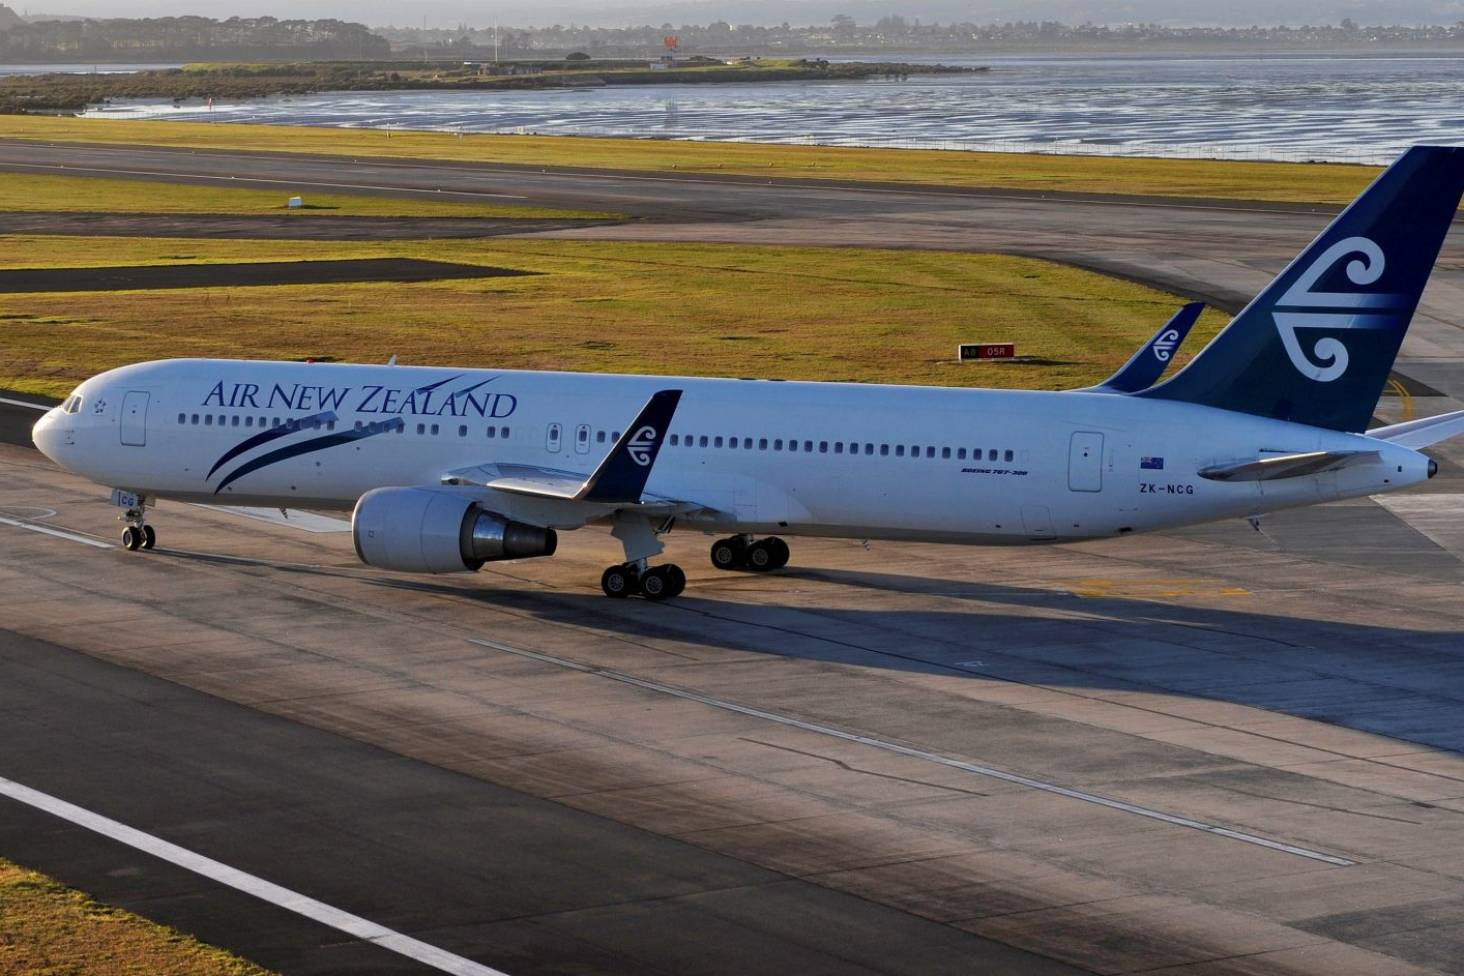 What happens when New Zealand's passenger jets are retired? A career